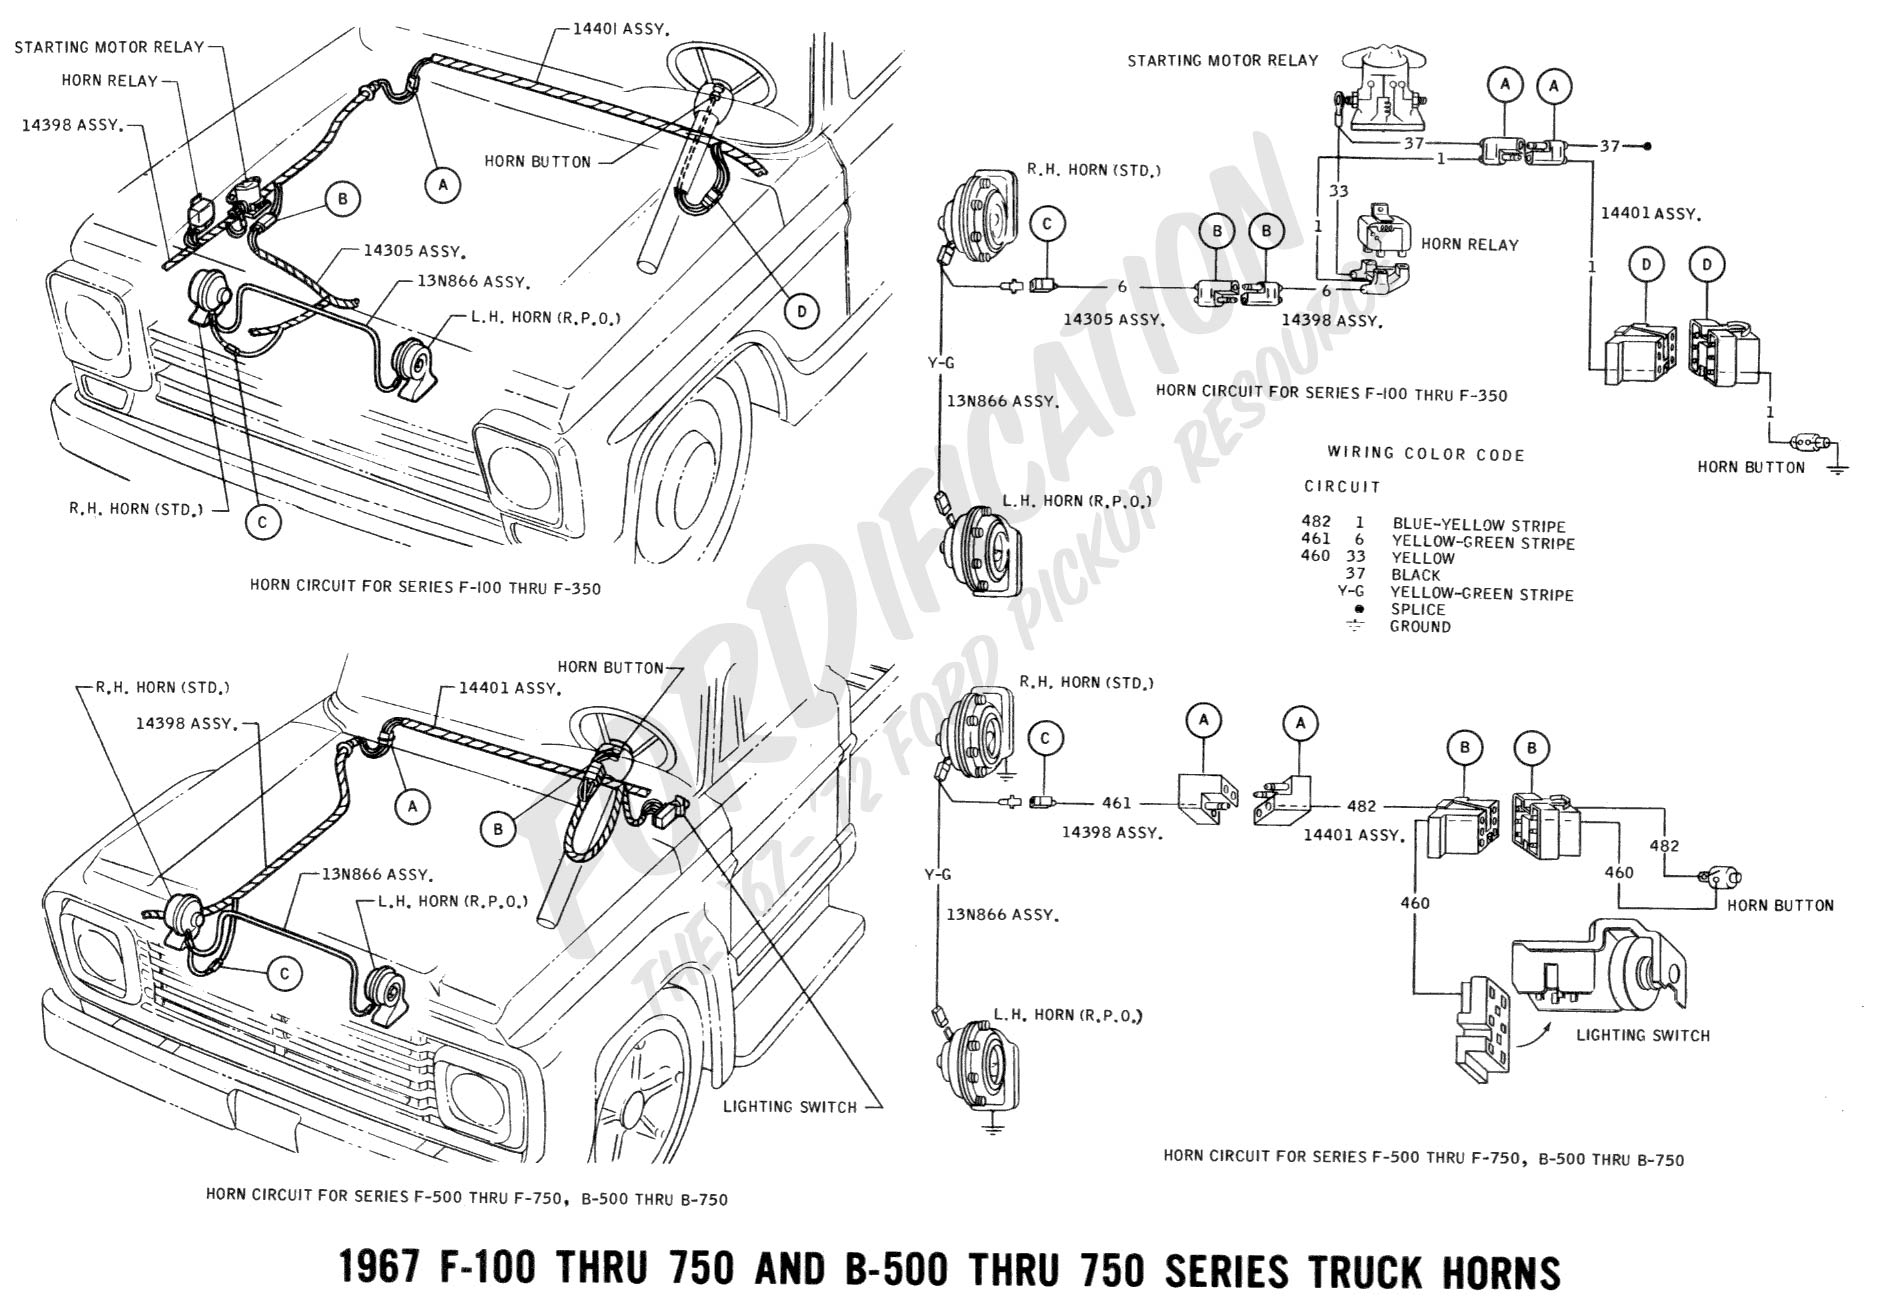 1967 F100 Heater Wiring Diagram Just Another Blog Mustang Schematic Ford Truck Schema Diagrams Rh 15 Justanotherbeautyblog De